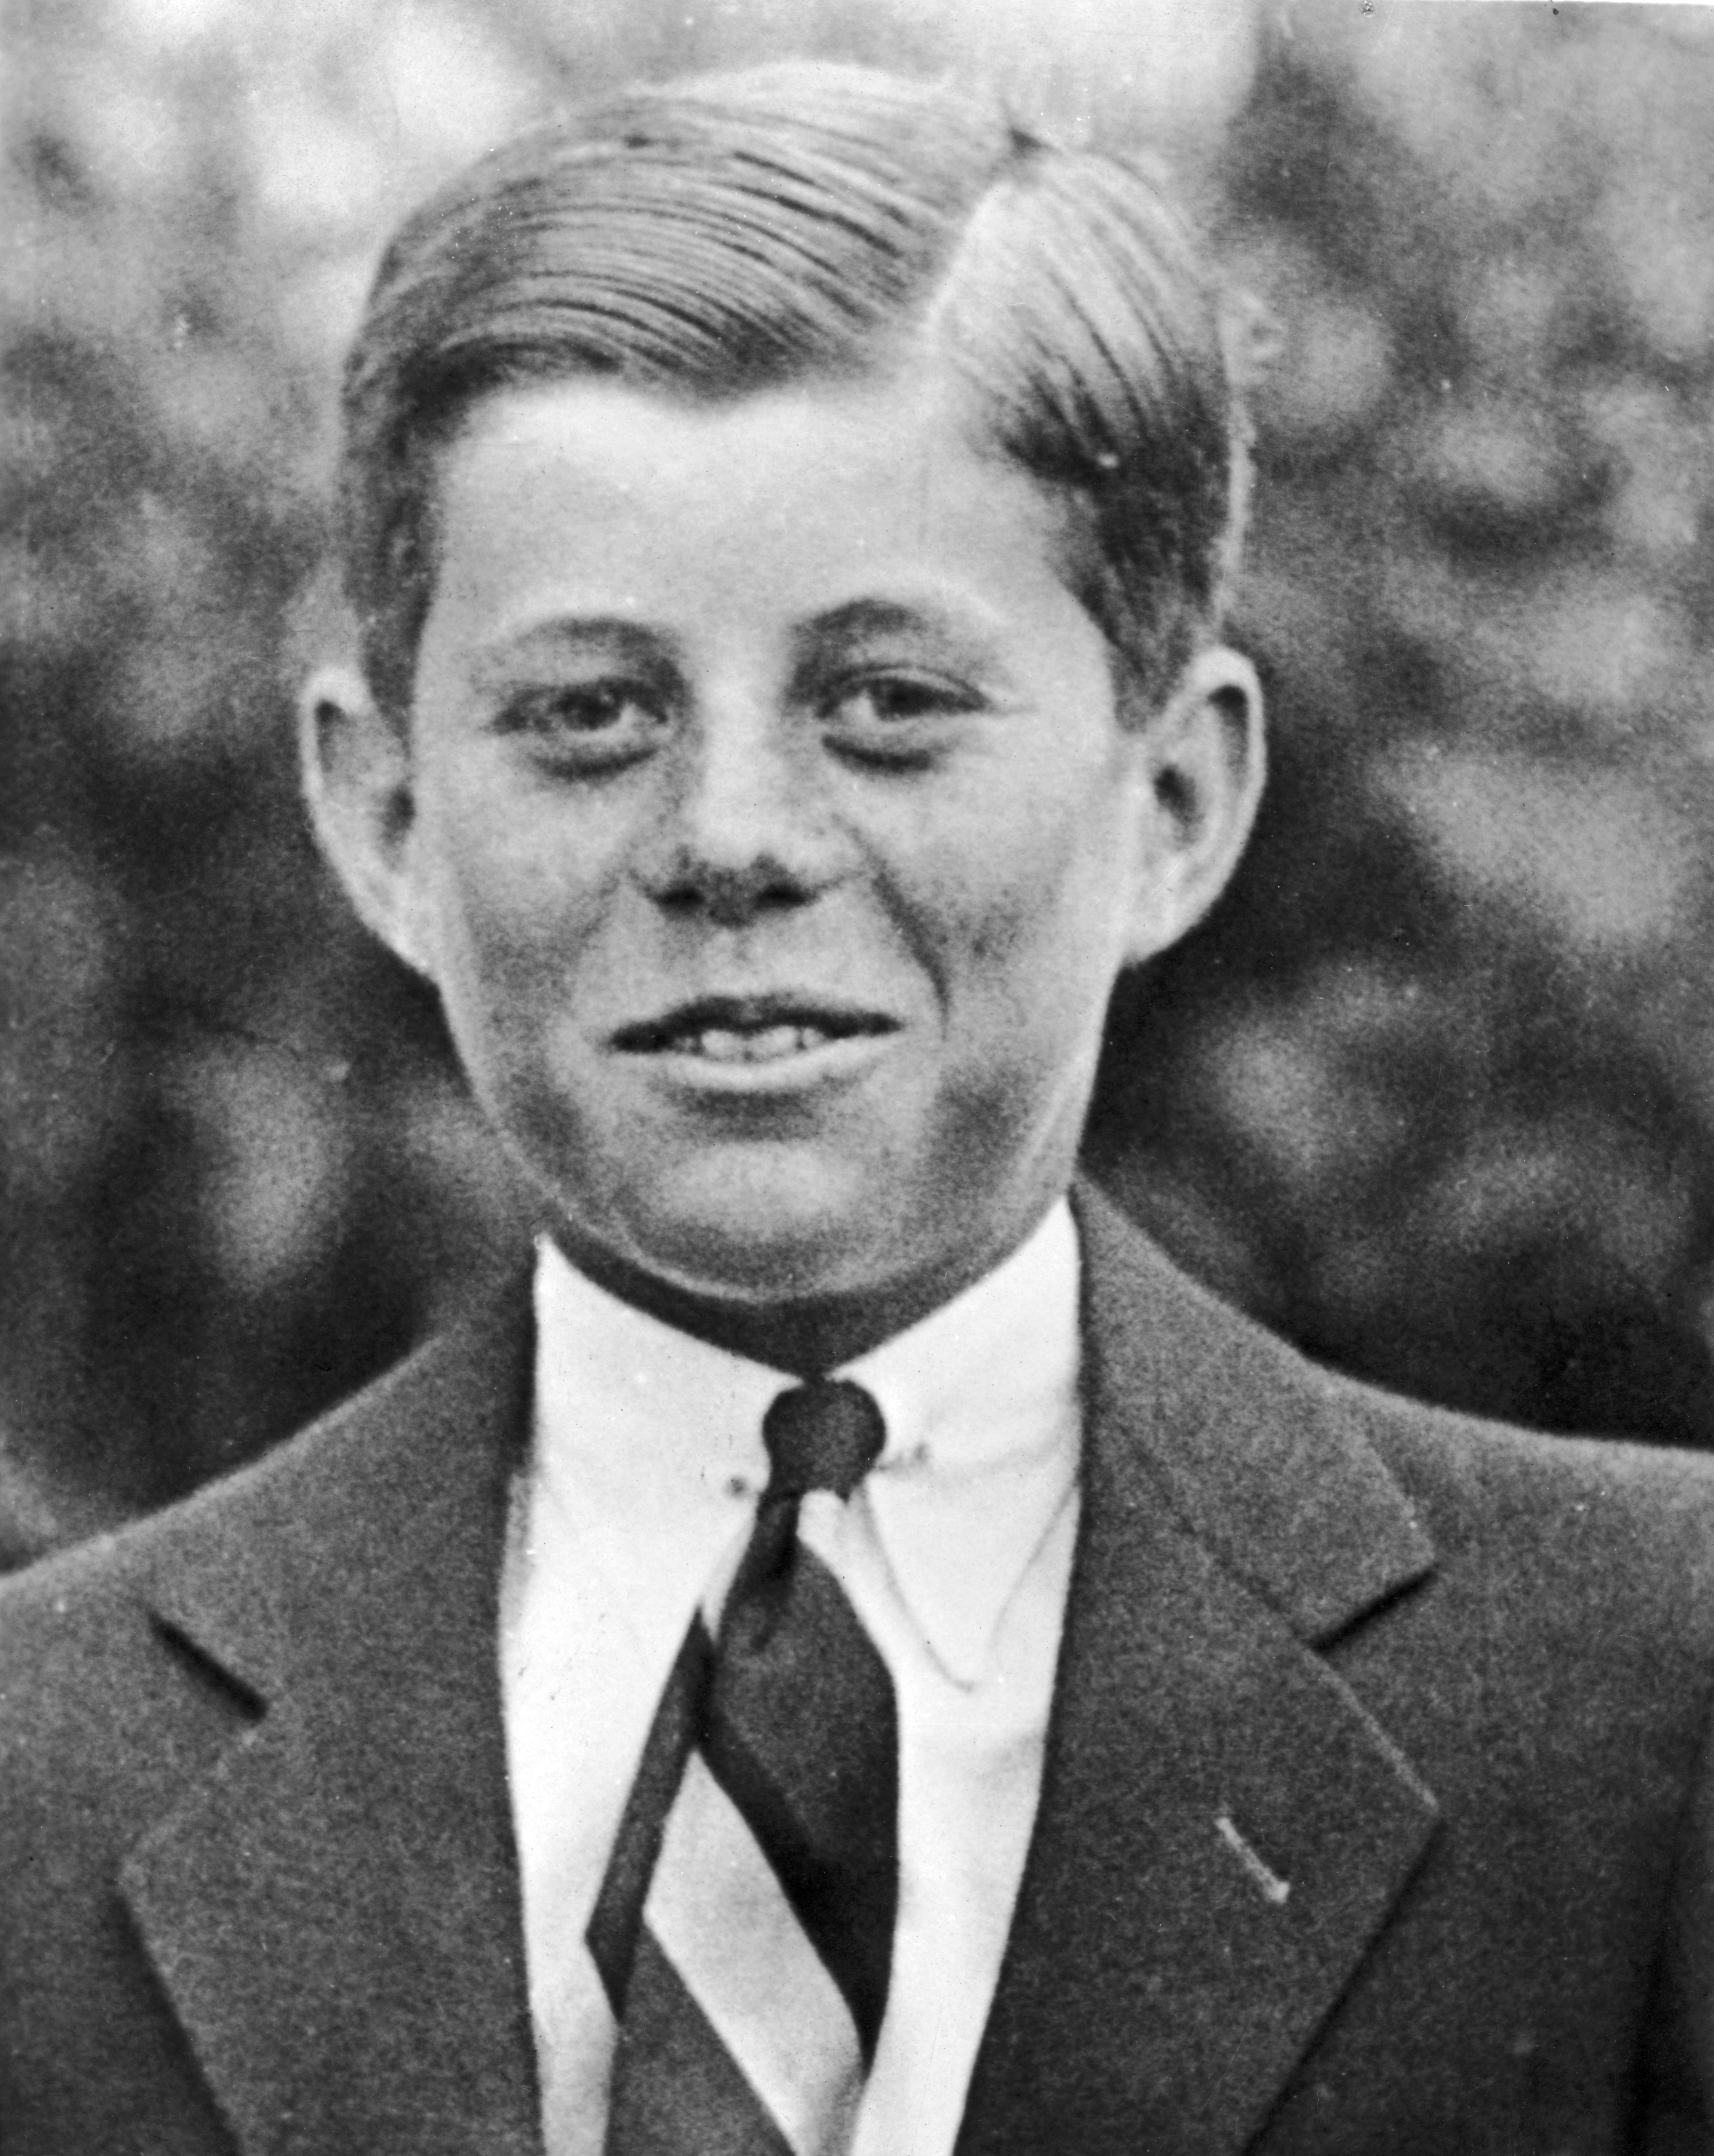 <div class='meta'><div class='origin-logo' data-origin='none'></div><span class='caption-text' data-credit='ulton Archive/Getty Images'>1927:  Headshot portrait of John F Kennedy (1917-1963) at age ten, standing outdoors and wearing a suit with his hair slicked back.</span></div>